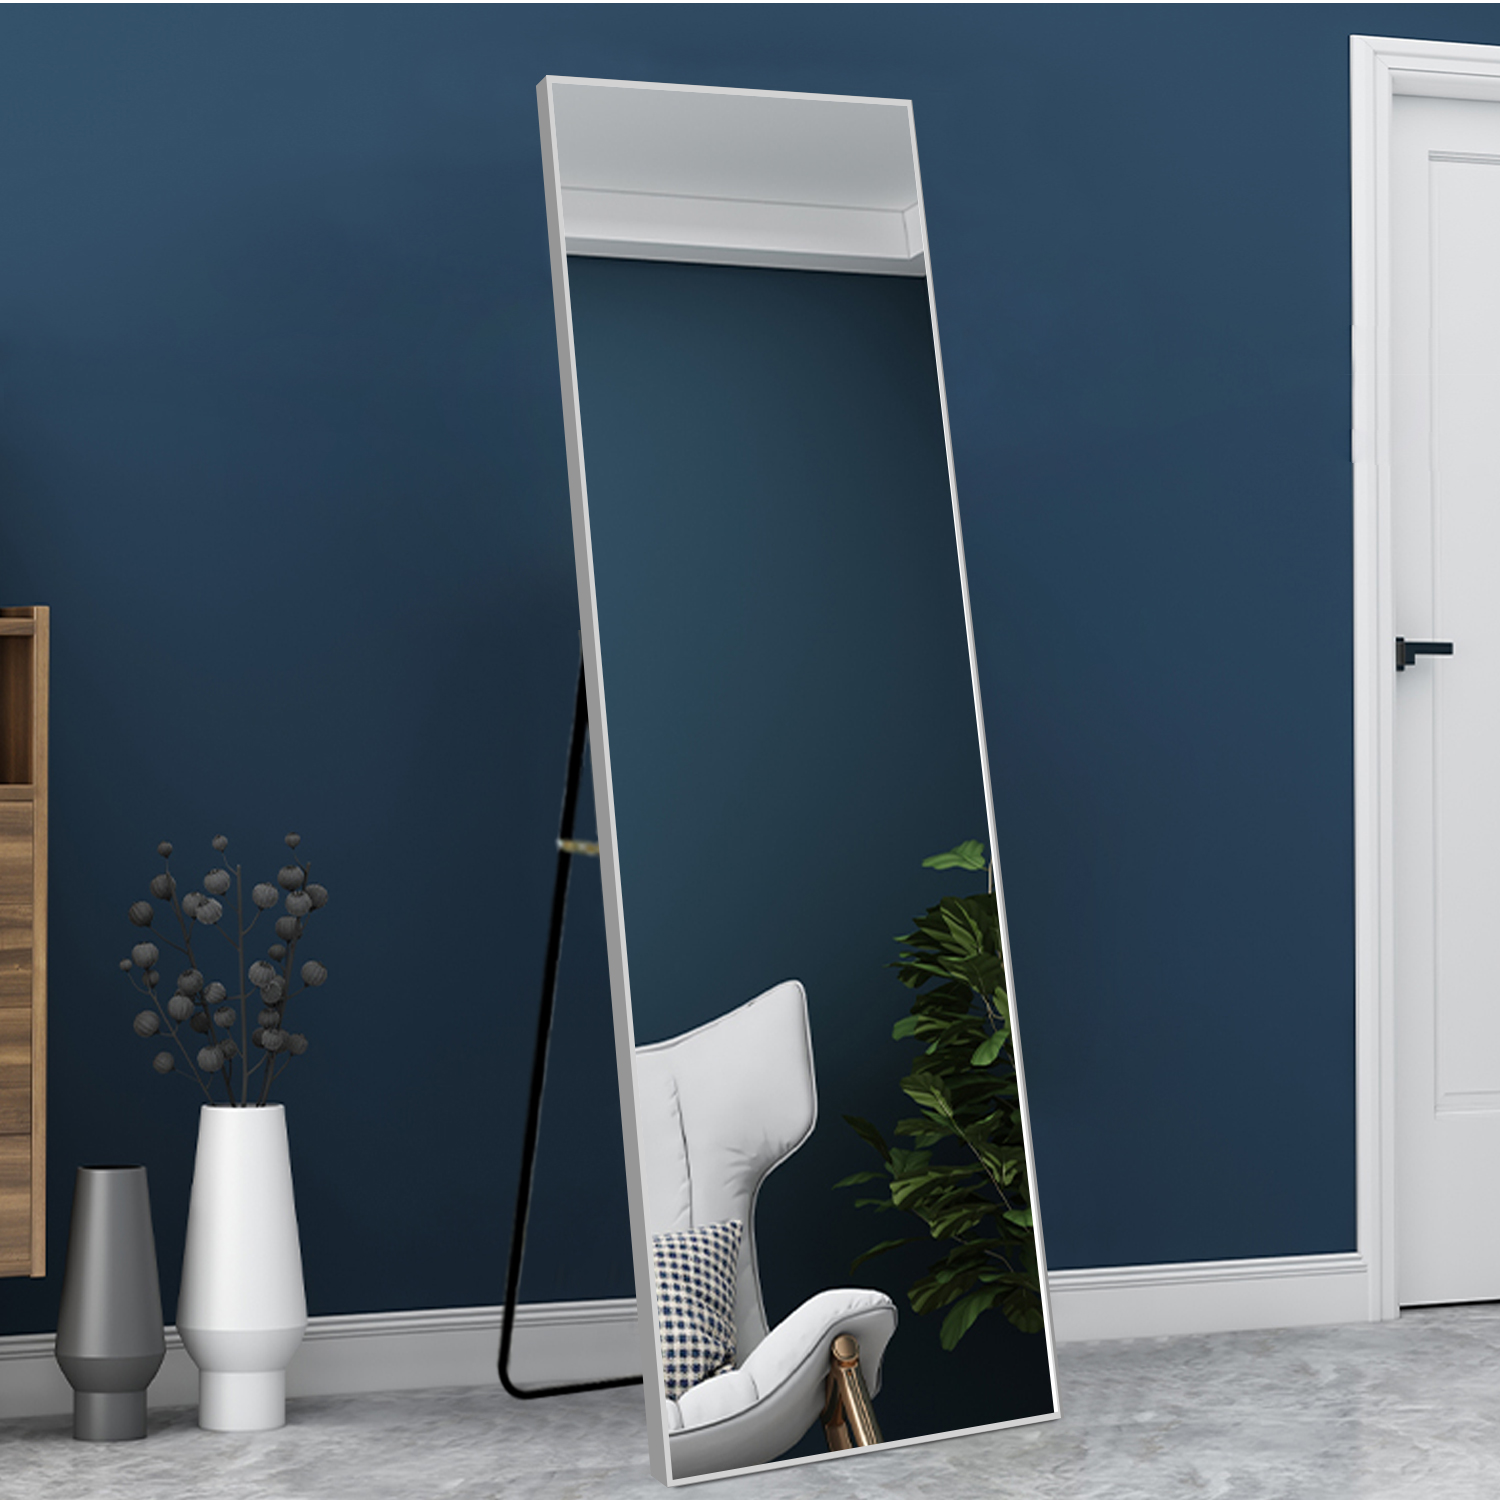 Neutype Full Length Mirror With Standing Holder Floor Mirror Large Wall Mounted Mirror Bedroom Mirror Dressing Mirror Aluminum Alloy Thin Frame Silver 65 X 22 Walmart Canada